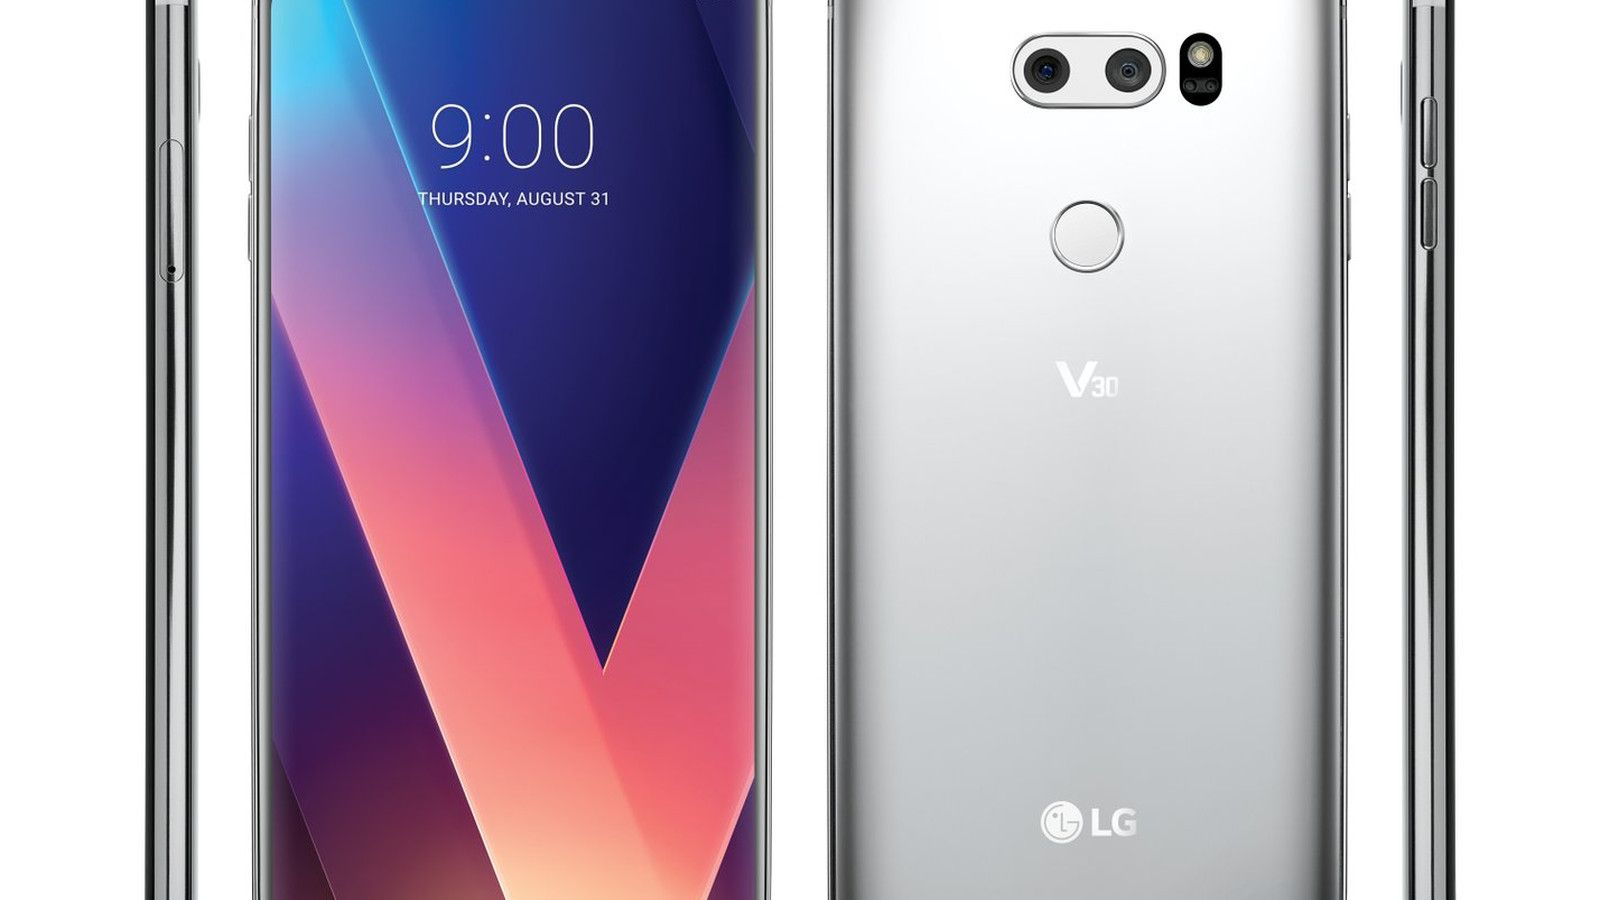 The LG V30 has me more excited than the new iPhone